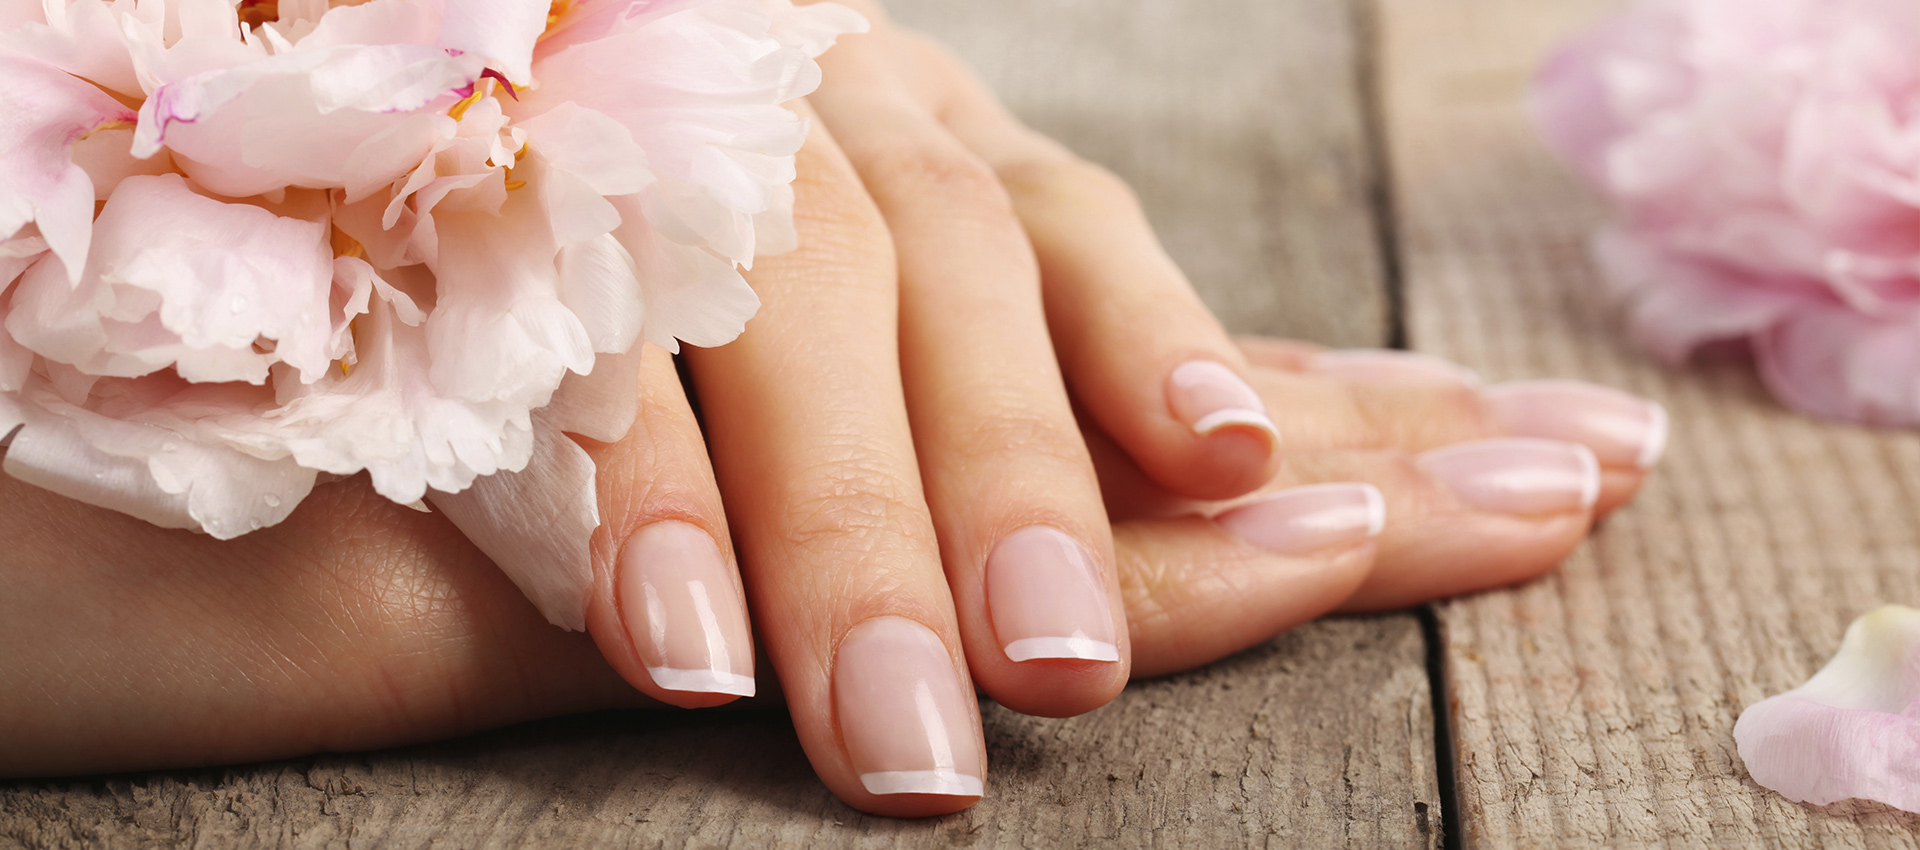 T B Nice One Nails: Nails, Waxing and Pedicures in Calgary and Chestermere